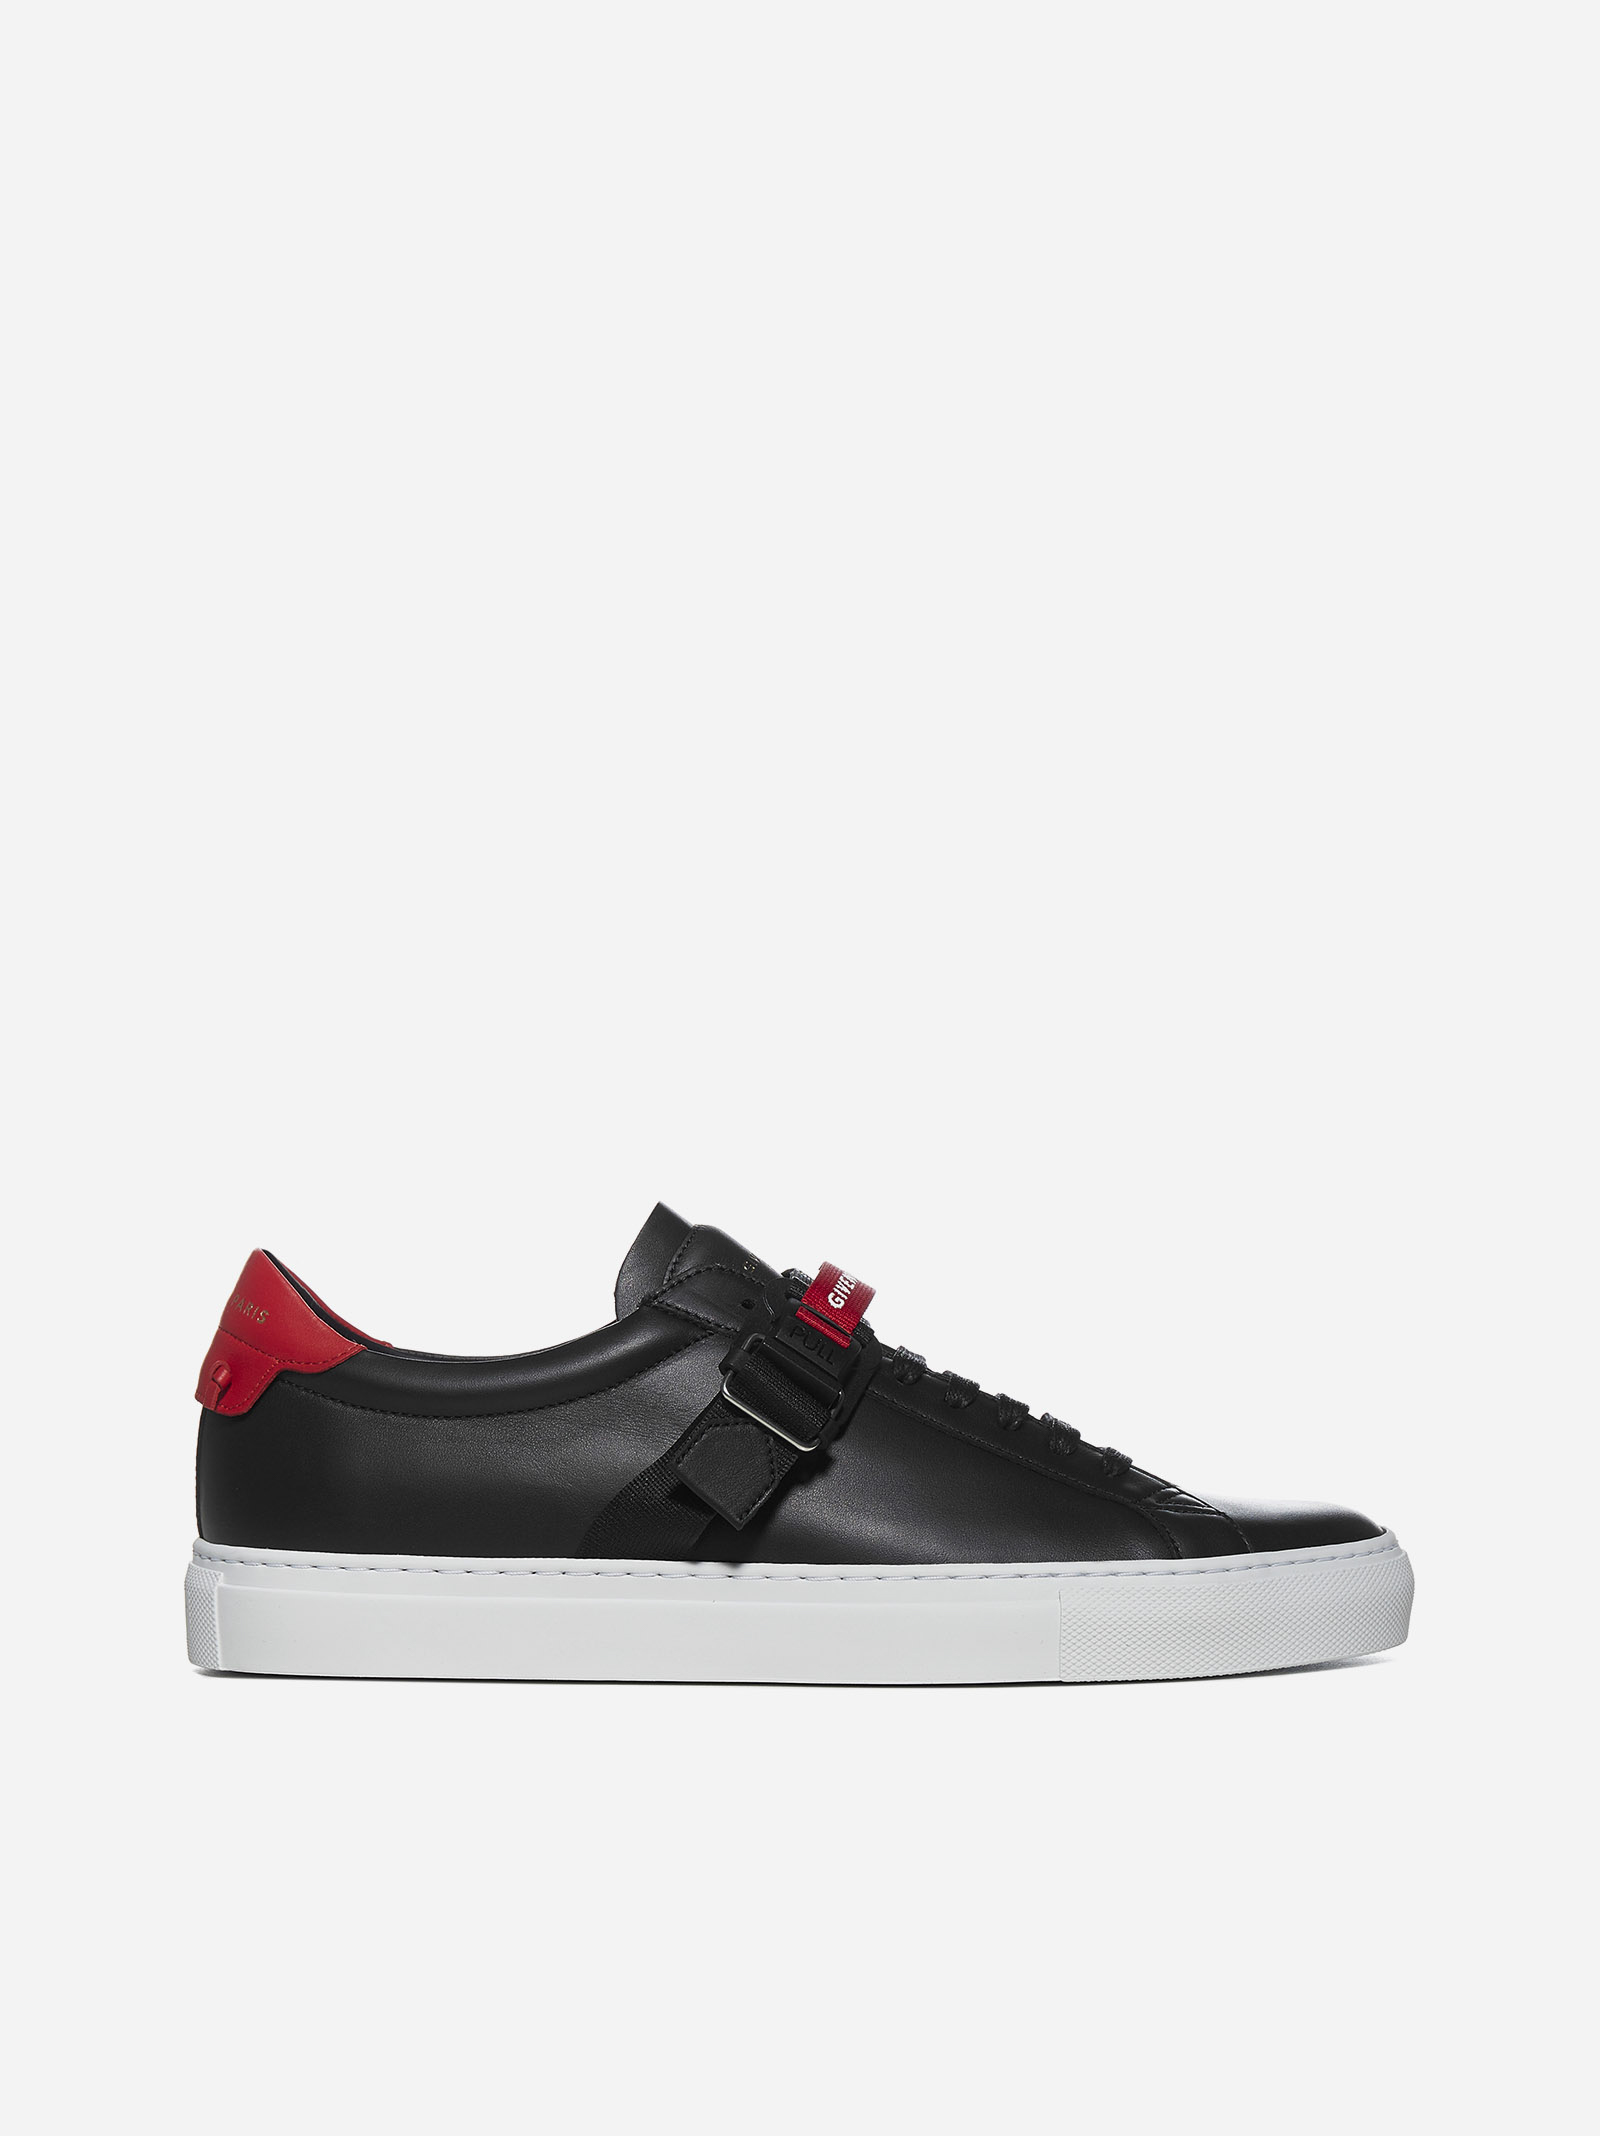 Givenchy Shoes Urban Street strap-detail leather sneakers